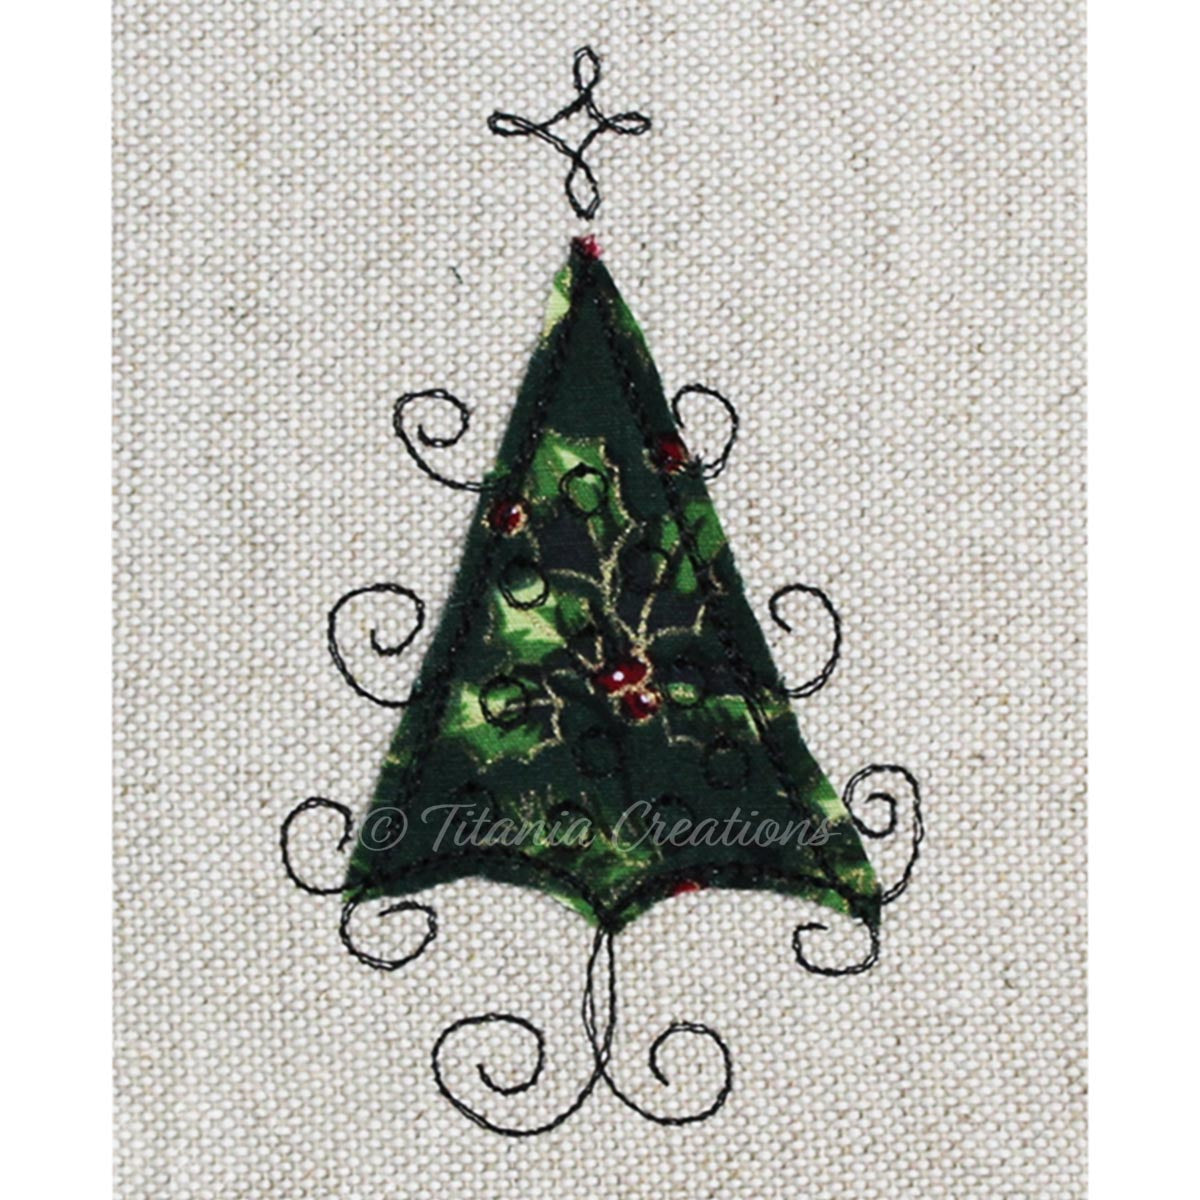 Raw Edge Applique Christmas Tree 4x4 5x7